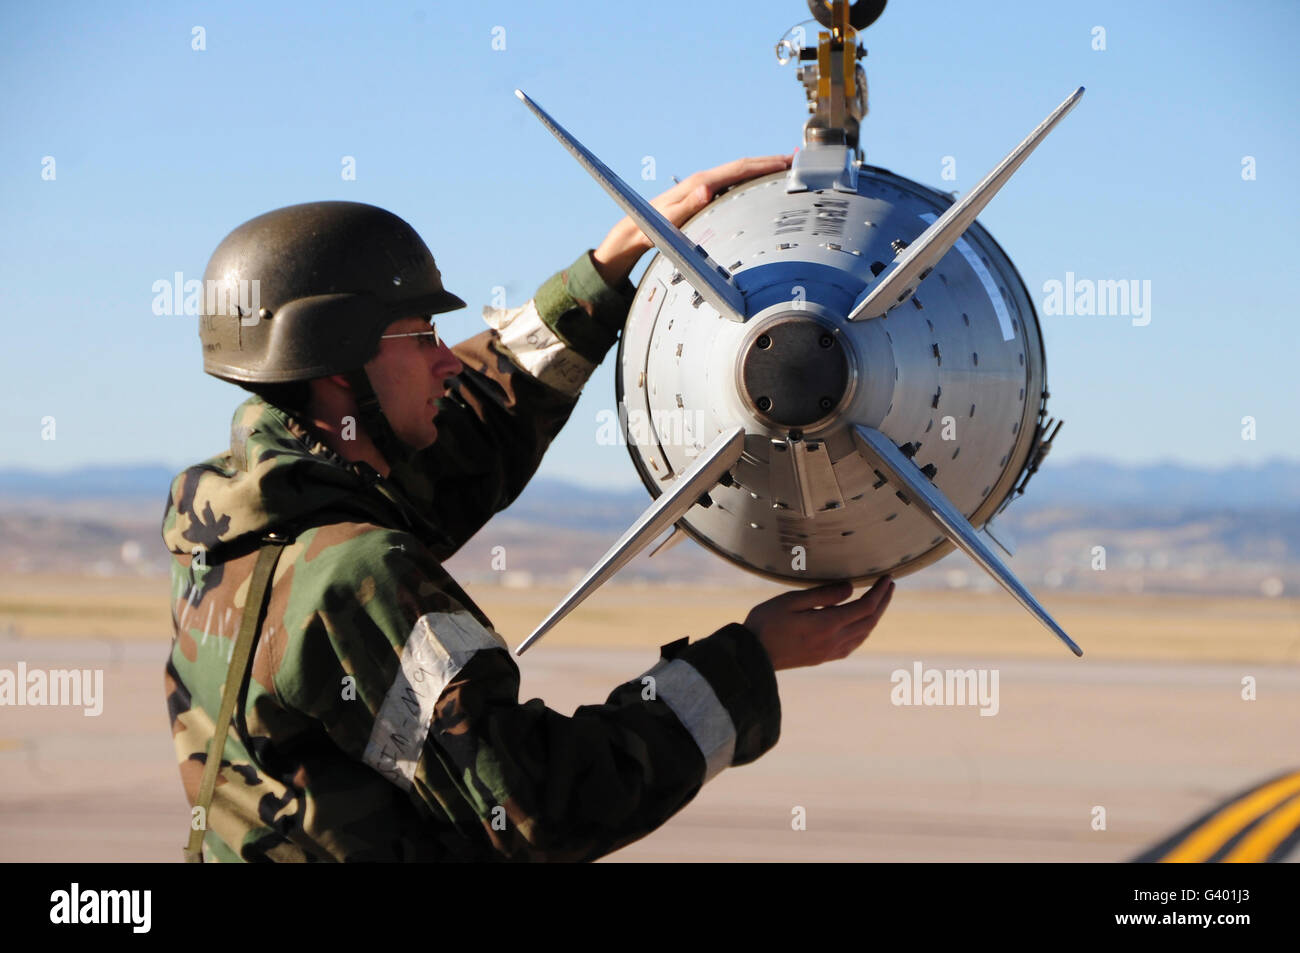 An Airman ensures a GBU-31 joint direct attack munition is secured to a bomb lift. - Stock Image